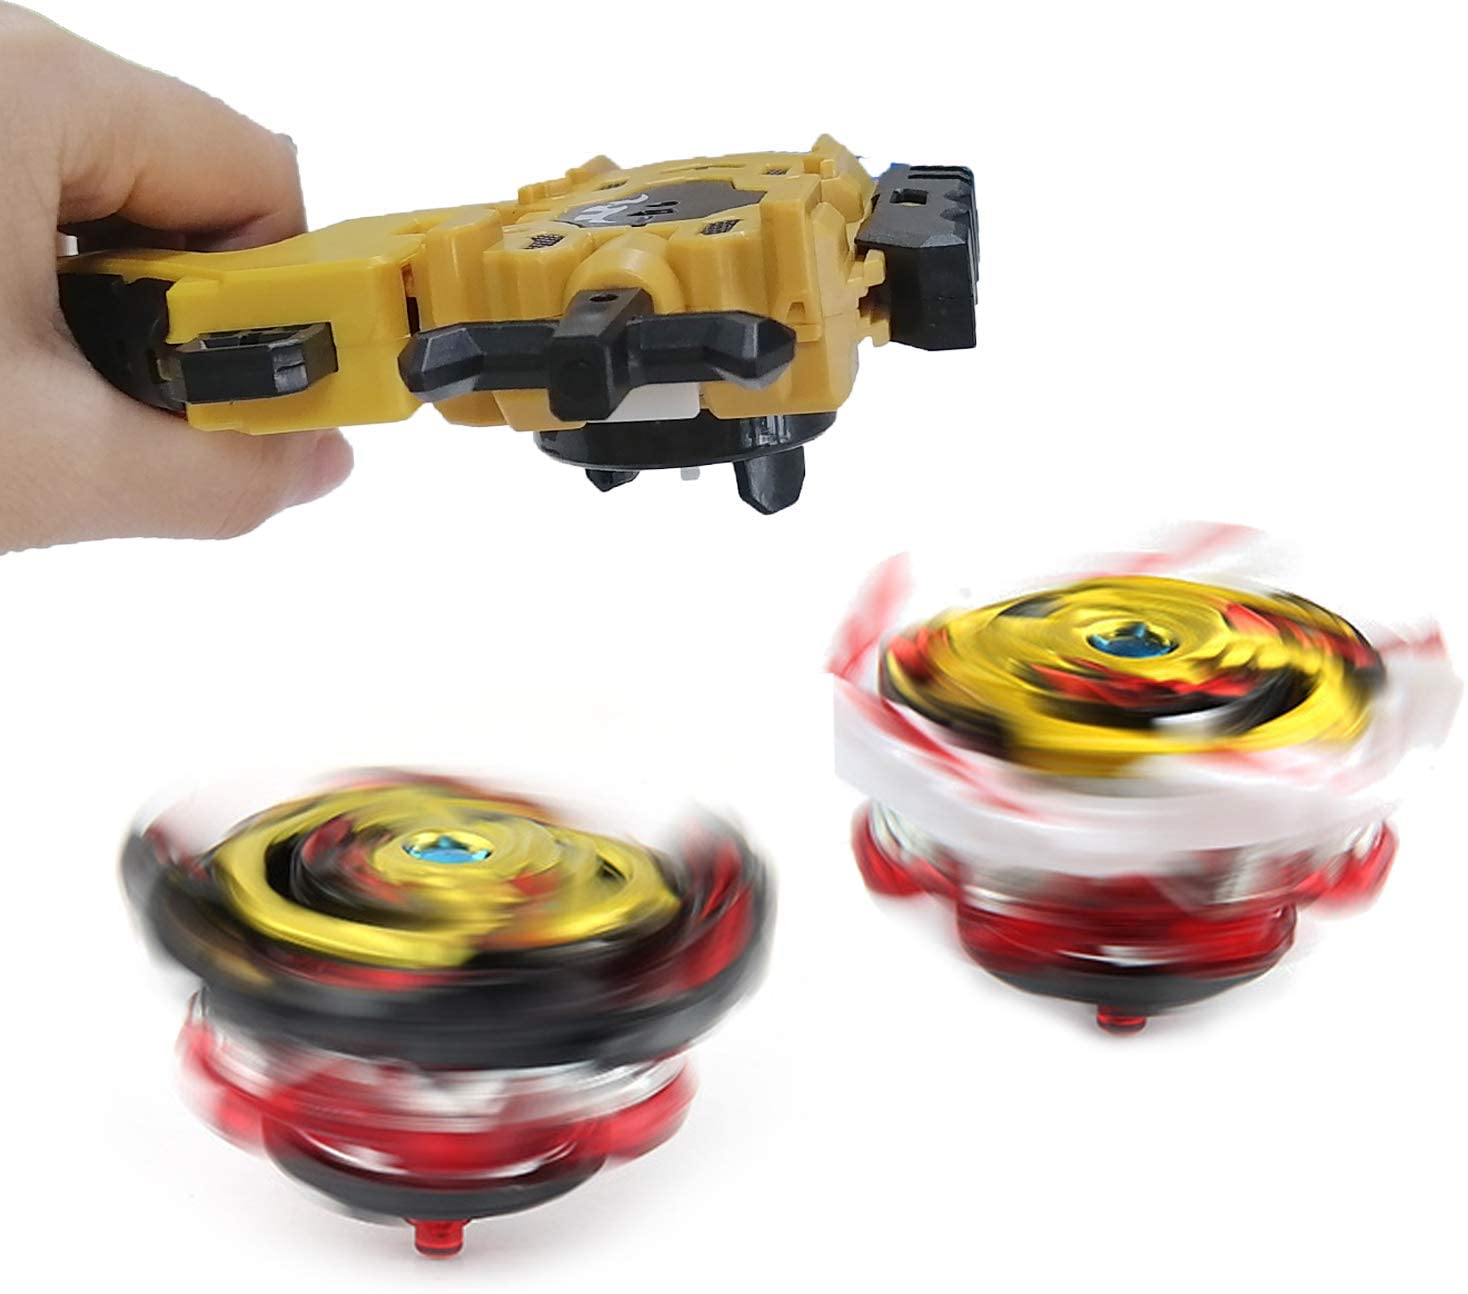 Beyblades Launcher and Grip Light Sparking Battling Burst String Launcher Gyro Left/&Right LR Spin Top Compatible with All Bey Burst Series Bey Battling Beyblades Gold